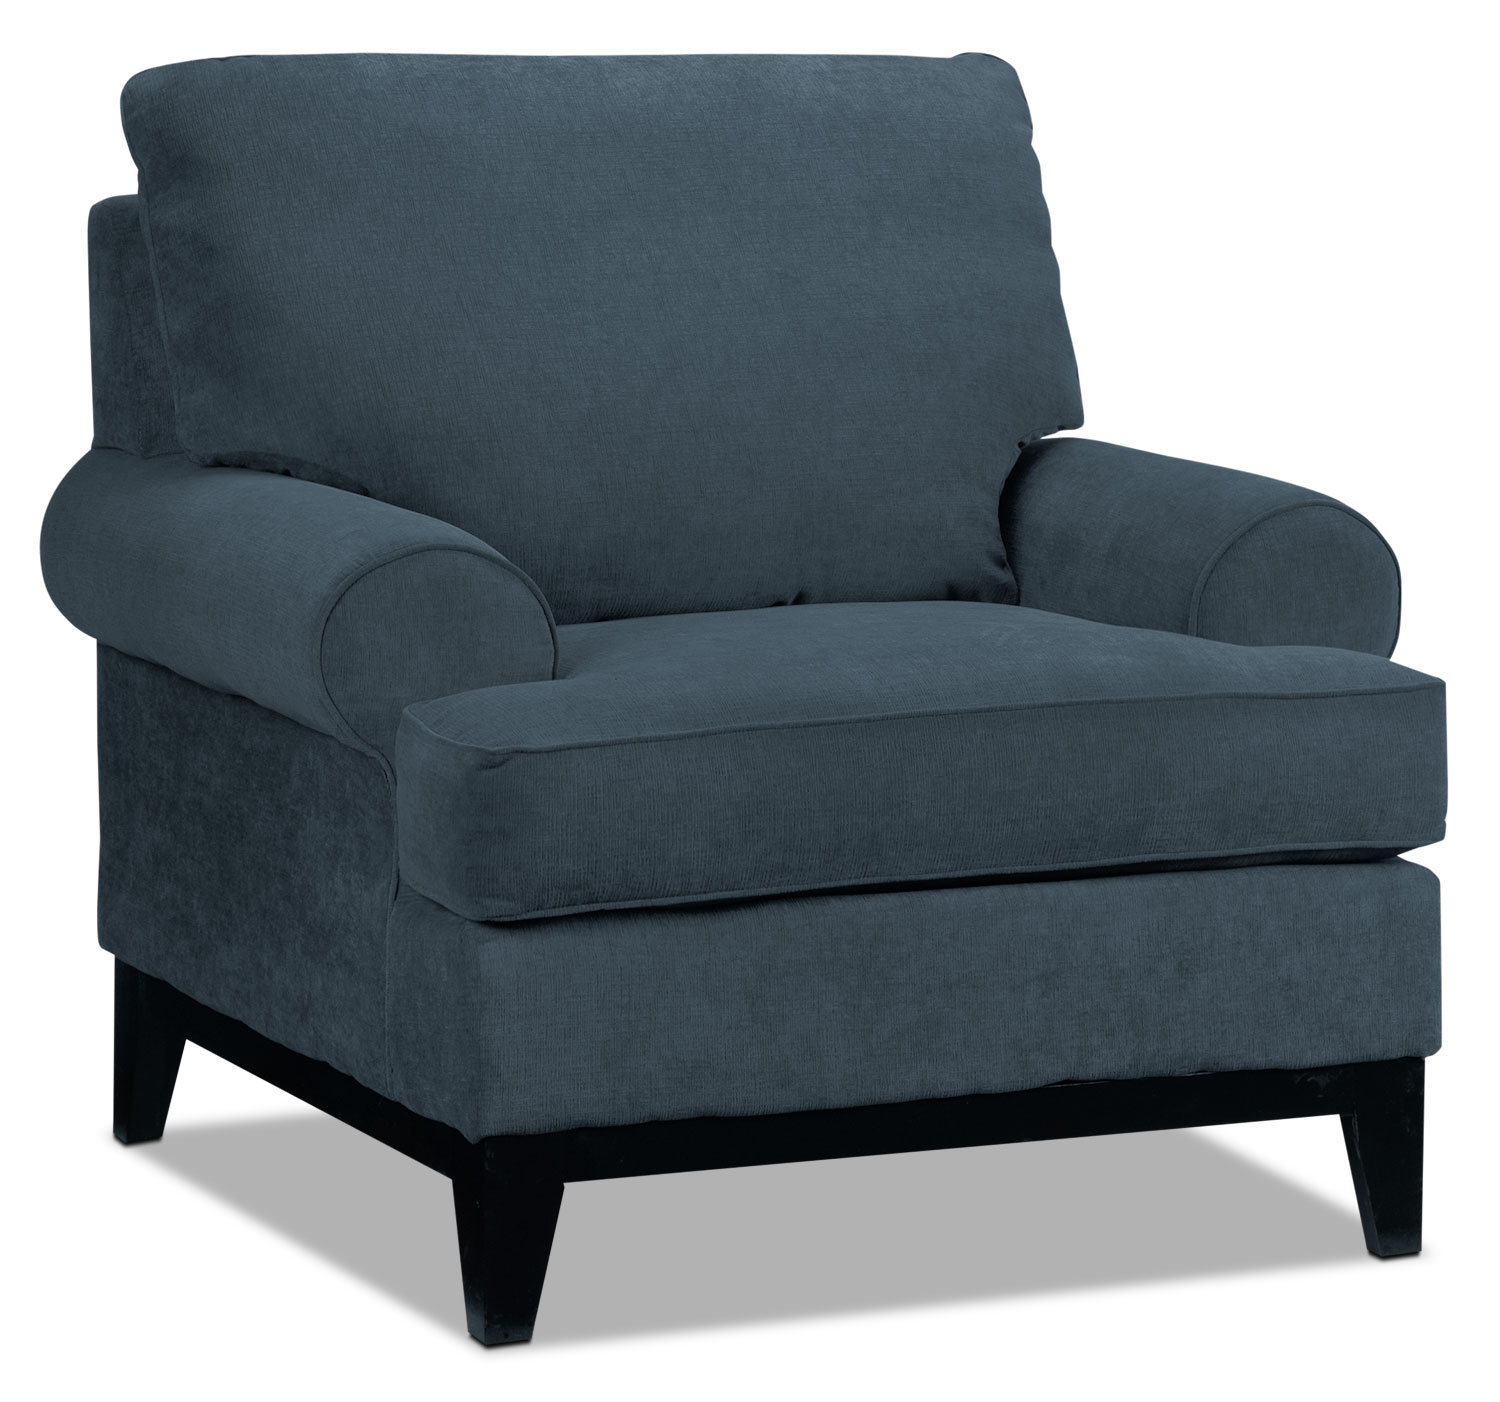 Crizia Chair - Navy